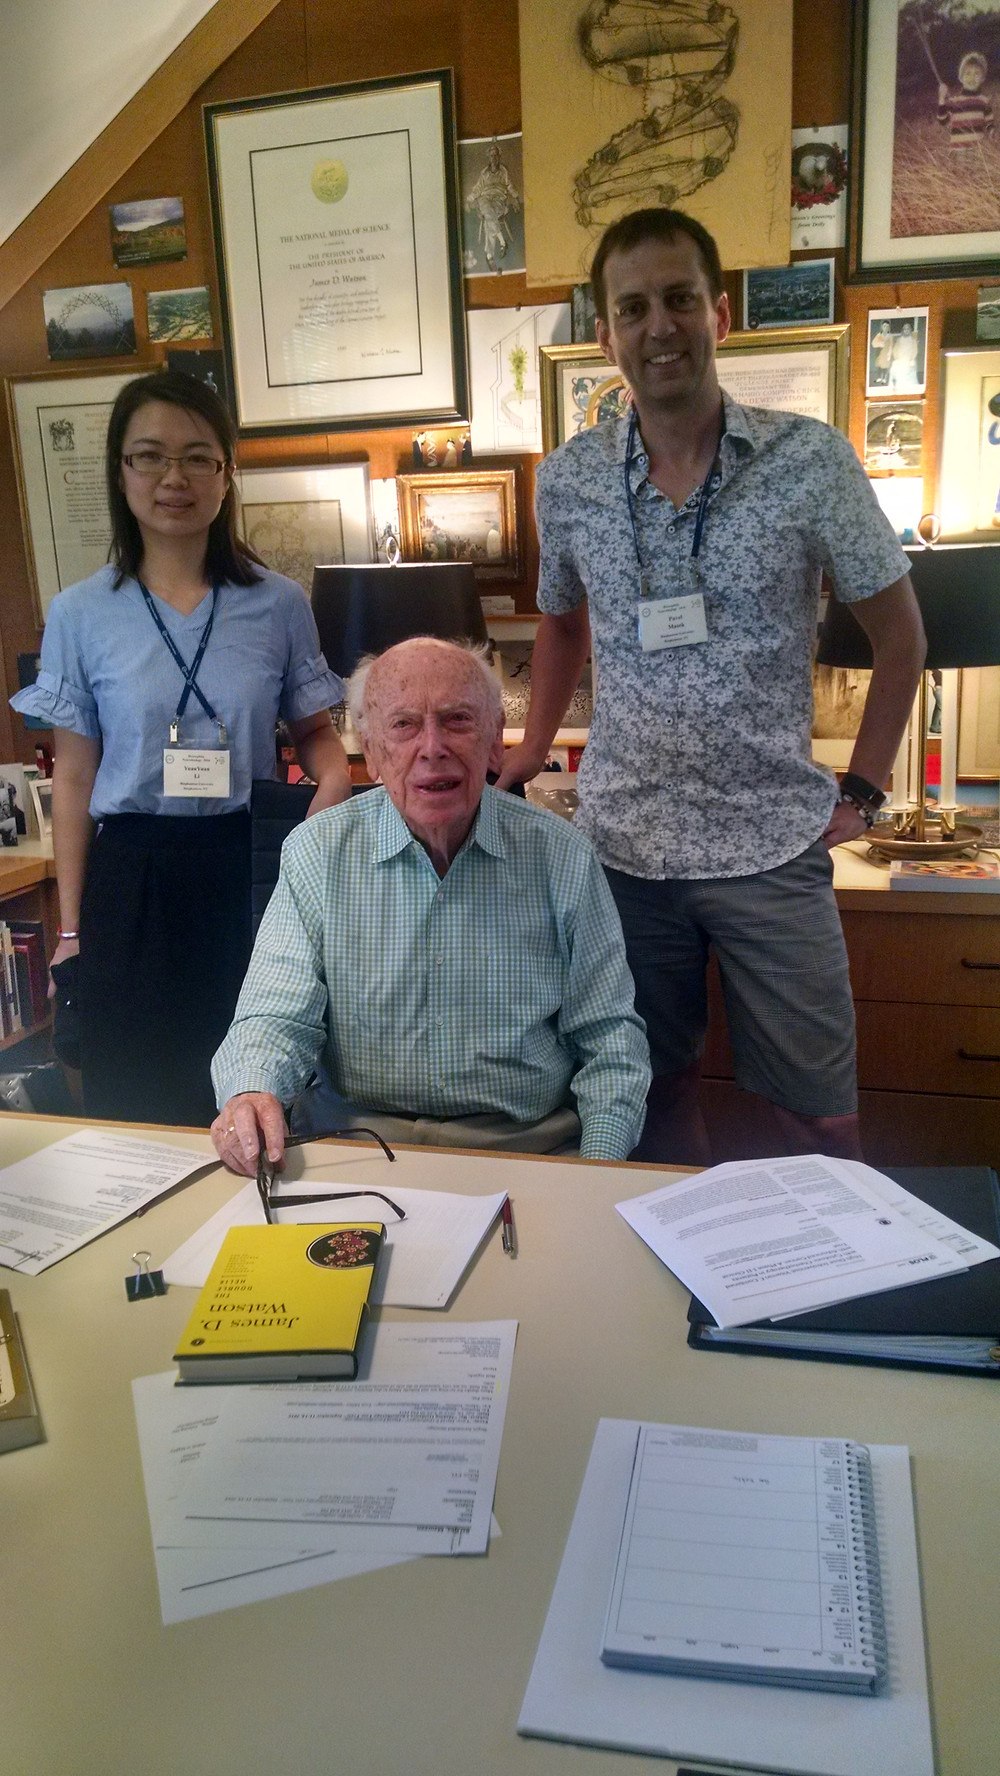 After teaching the Drosophila Neuro course for four years and meeting James Watson in the hallway, I finally found the right time, took Yuanyuana with me, and went to get couple of books signed from him. He is pretty chatty :) Unfortunatelly, I'm covering the framed Nobel Price.